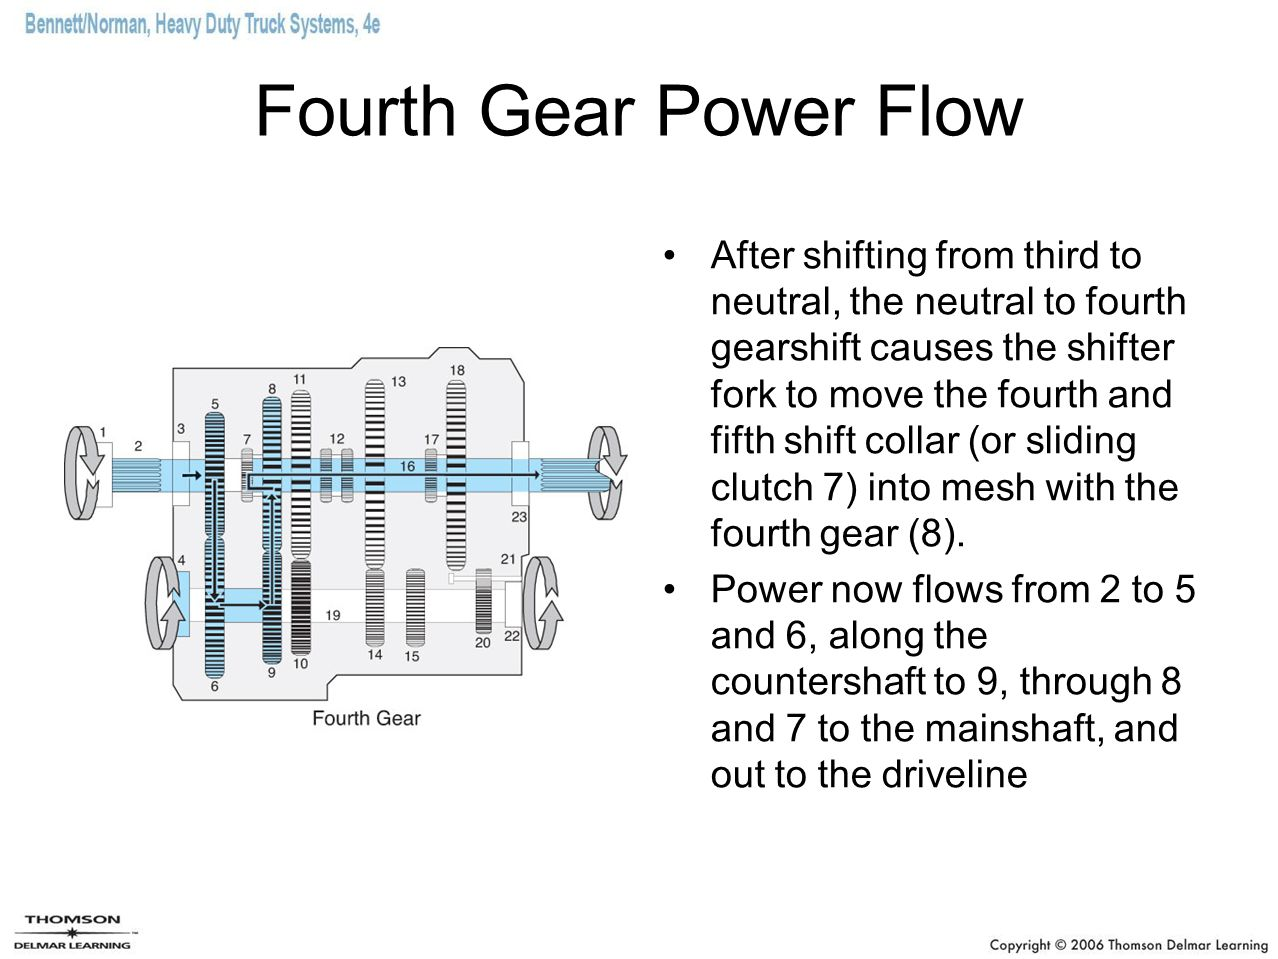 Fourth Gear Power Flow